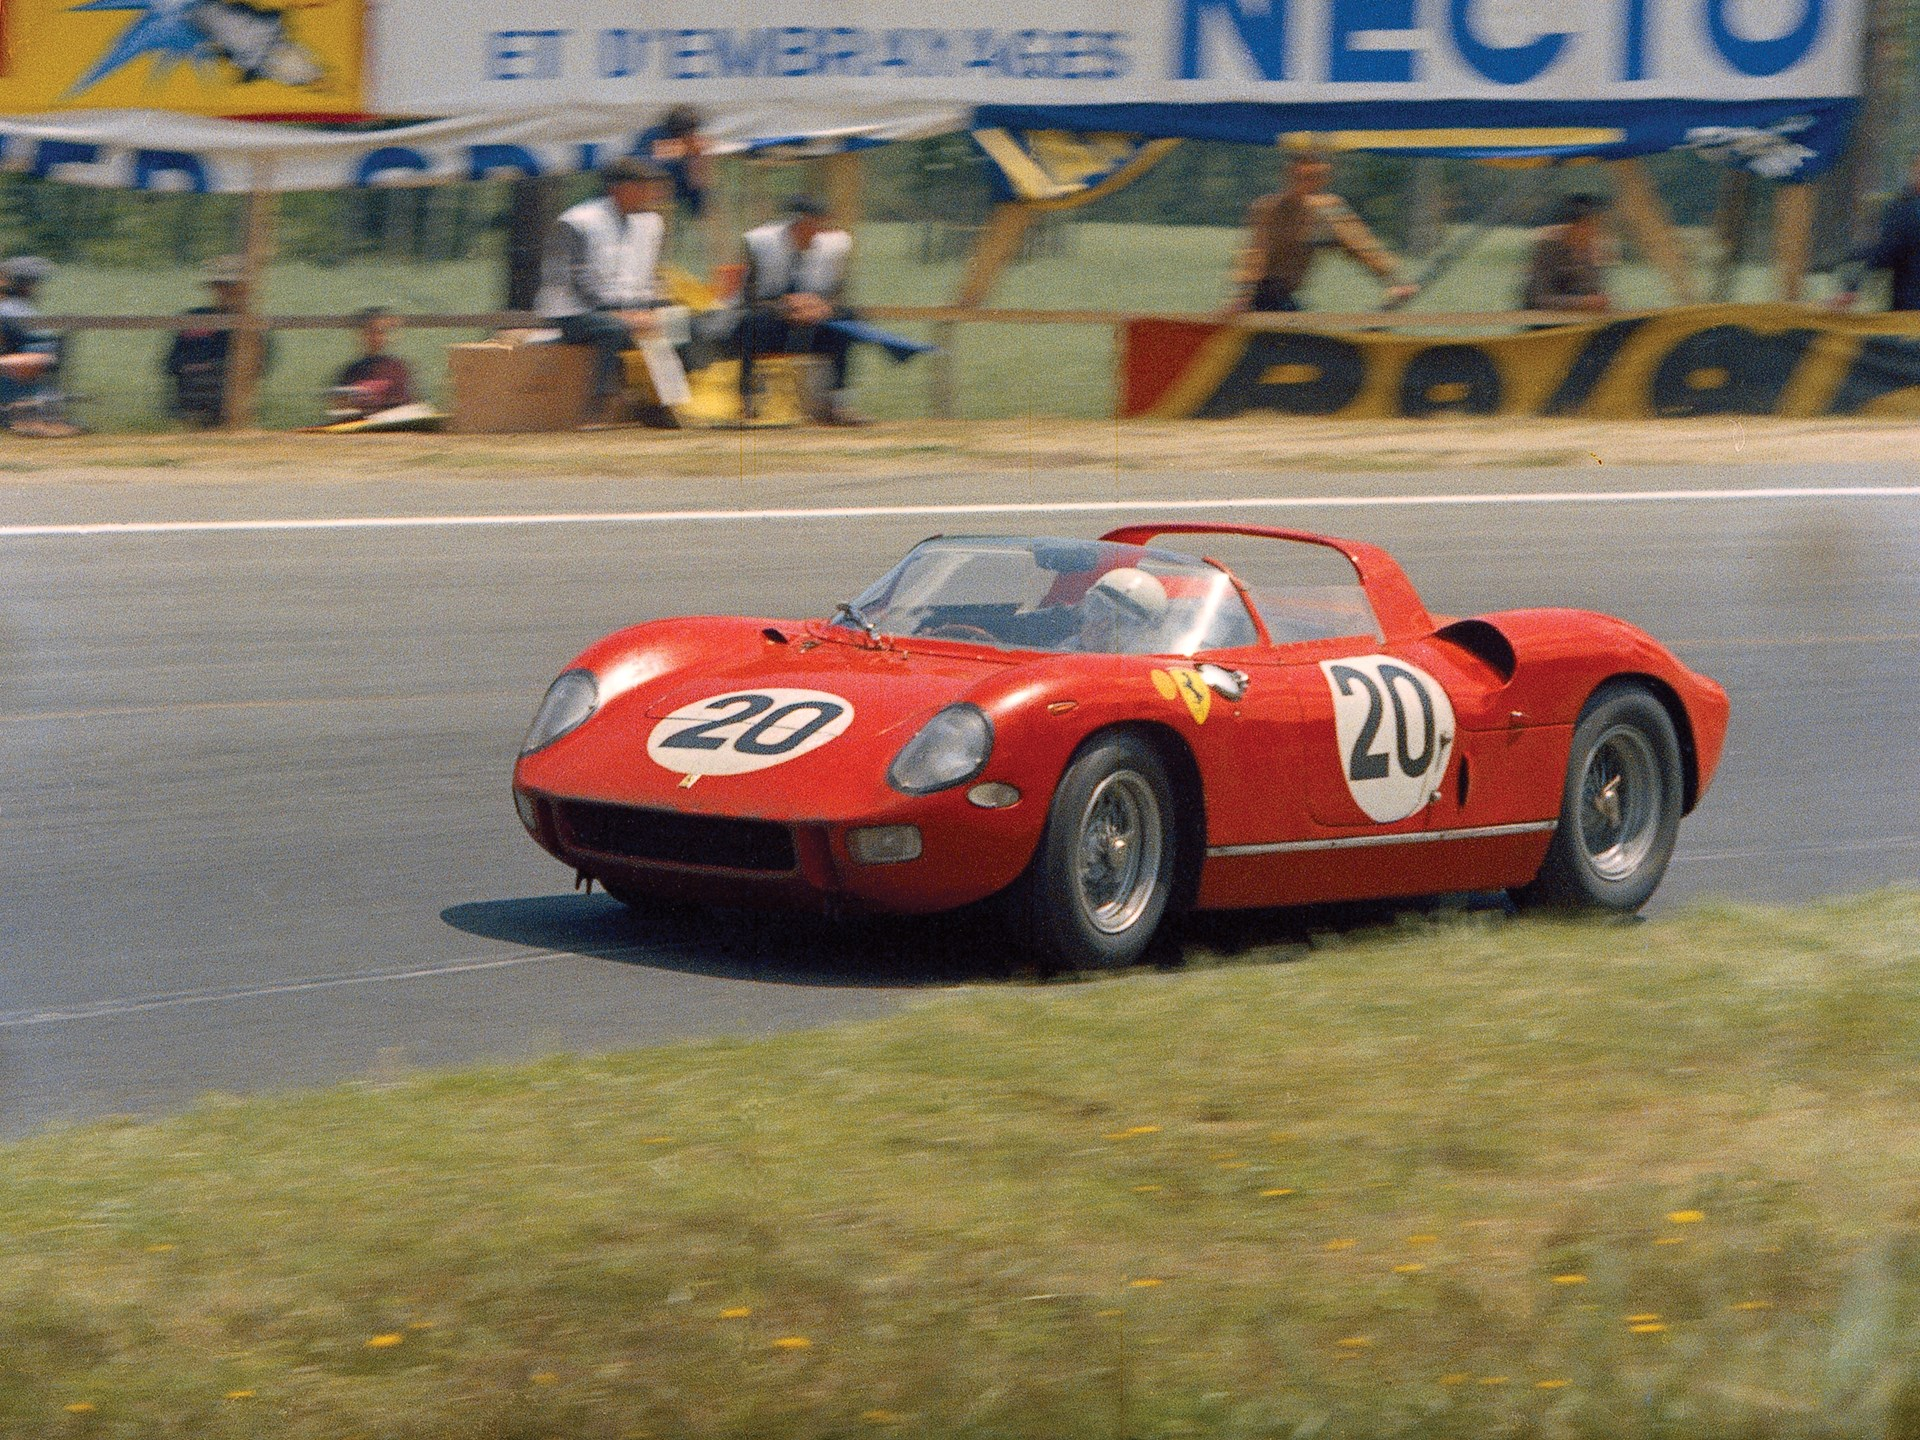 24 Hours of Le Mans, #20, Jean Guichet/Nino Varccarella, 1st Overall.